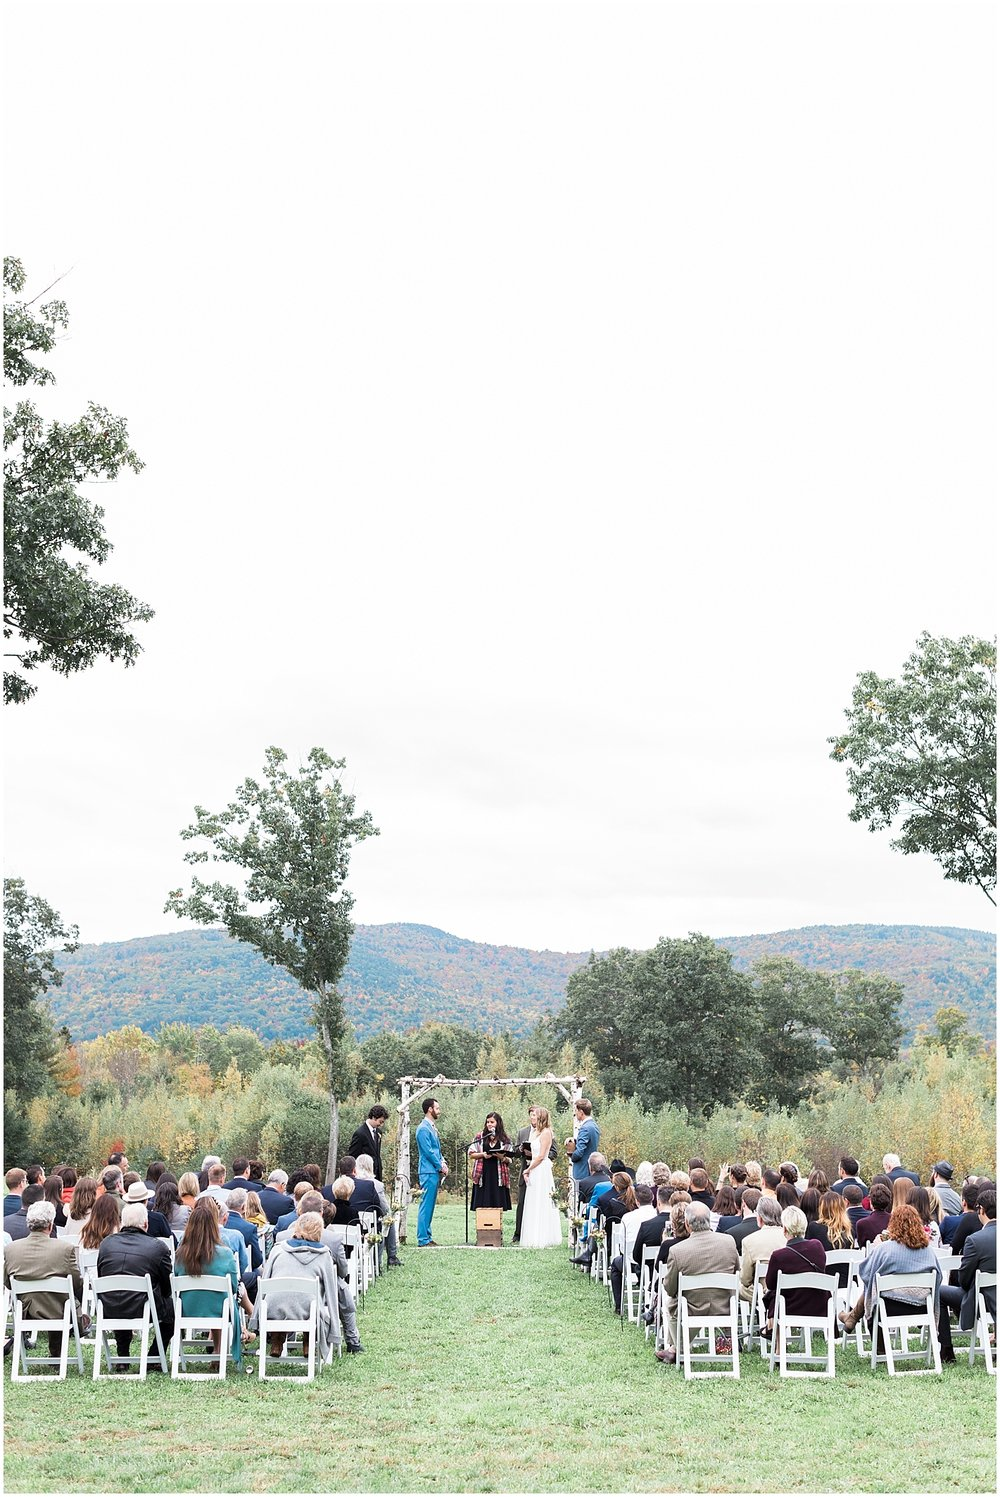 Outdoor New Hampshire Ceremony with a View photo by Alyssa Parker Photography